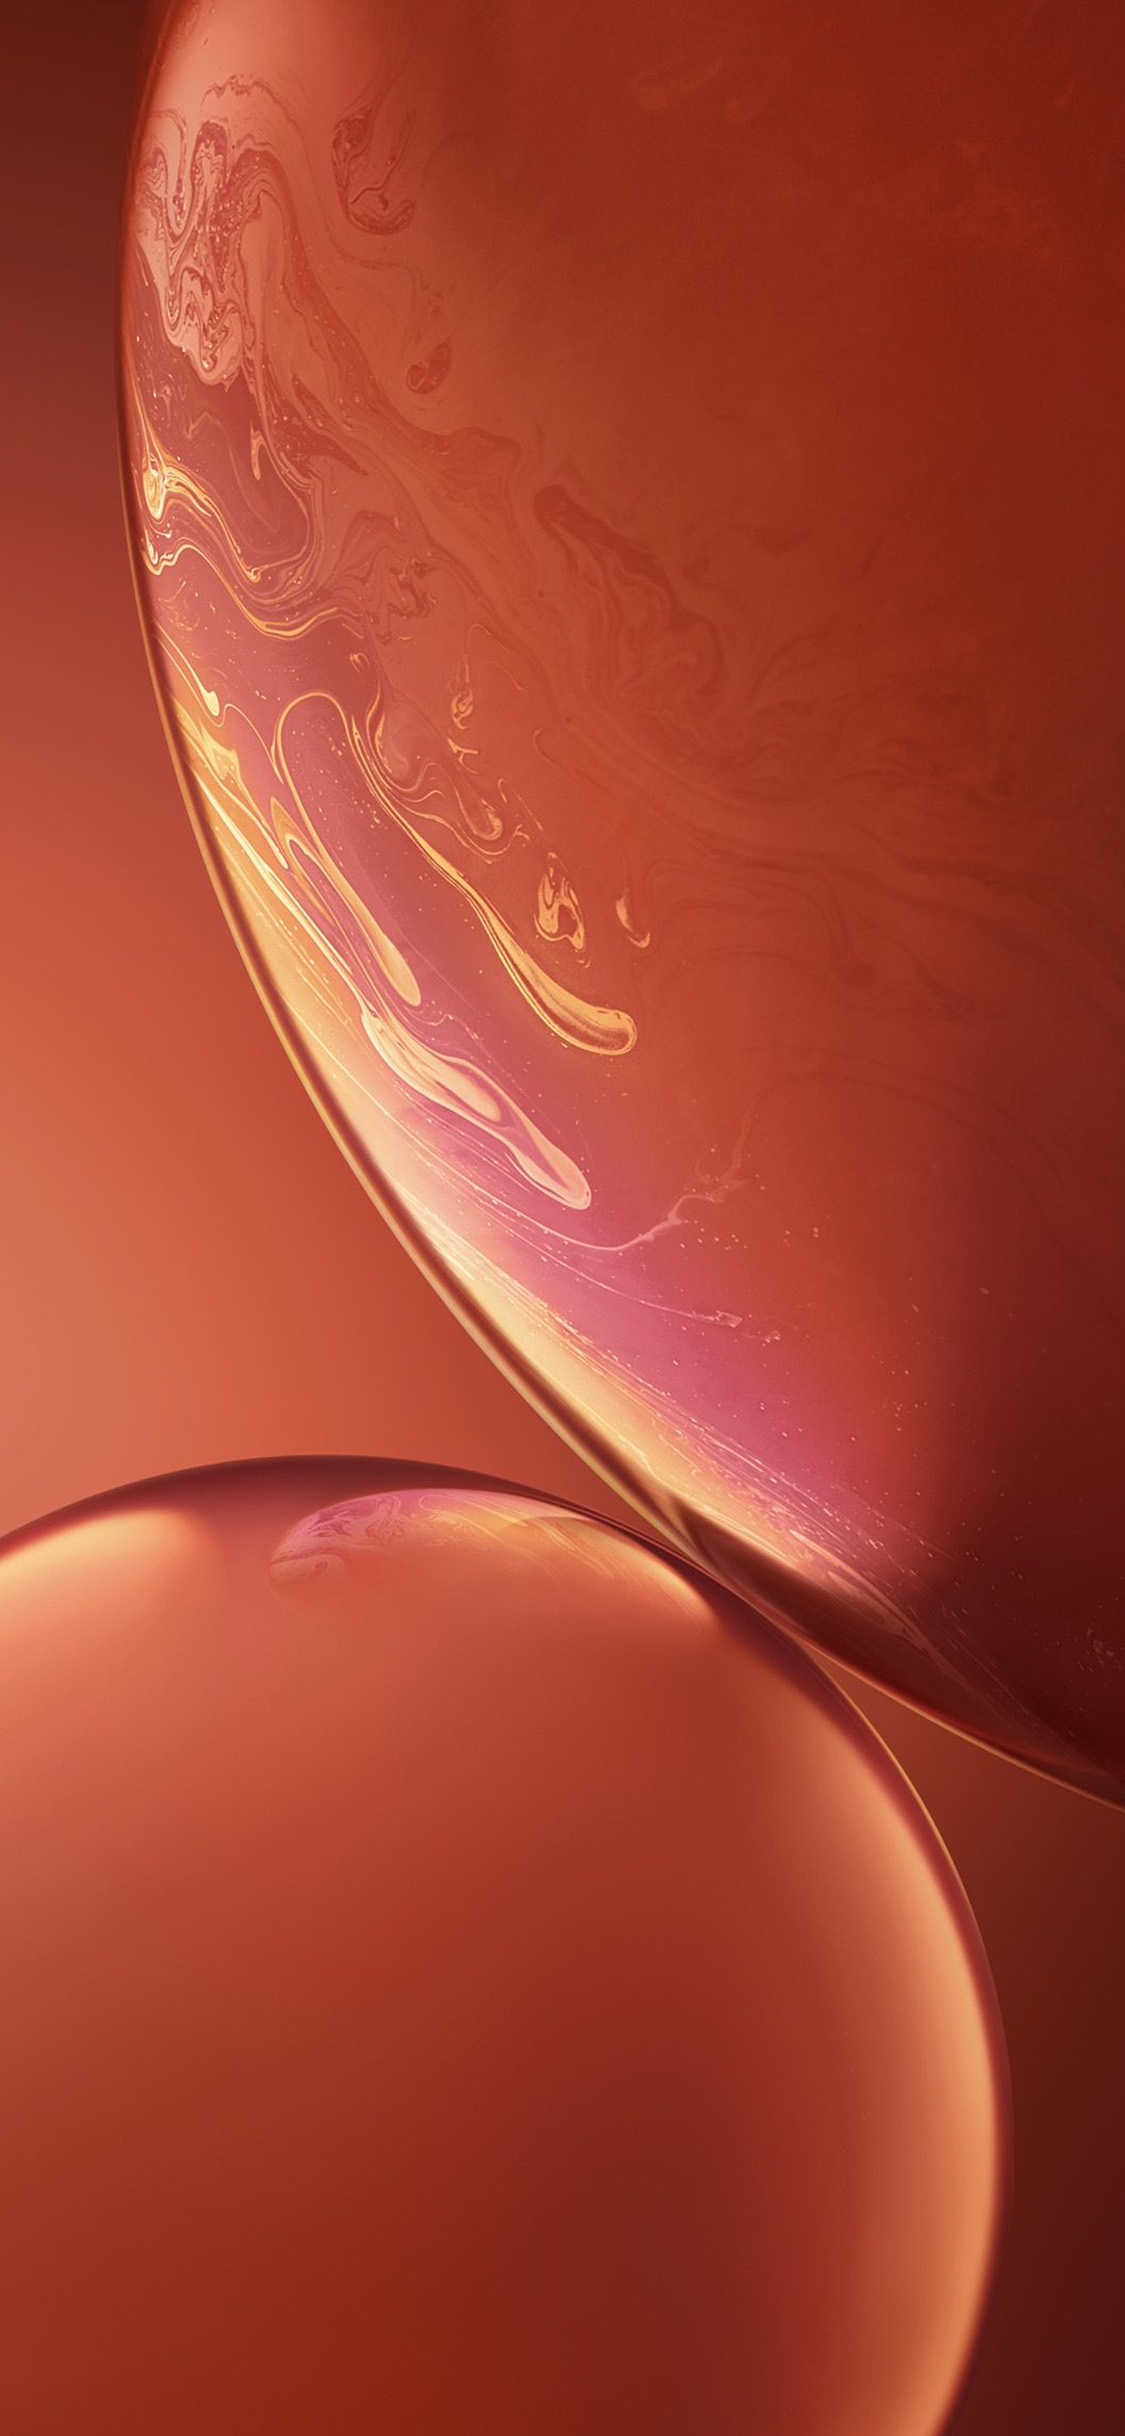 iPhonexpapers.com-Apple-iPhone-wallpaper-bg34-apple-iphone-xs-red-official-art-orange-bubble